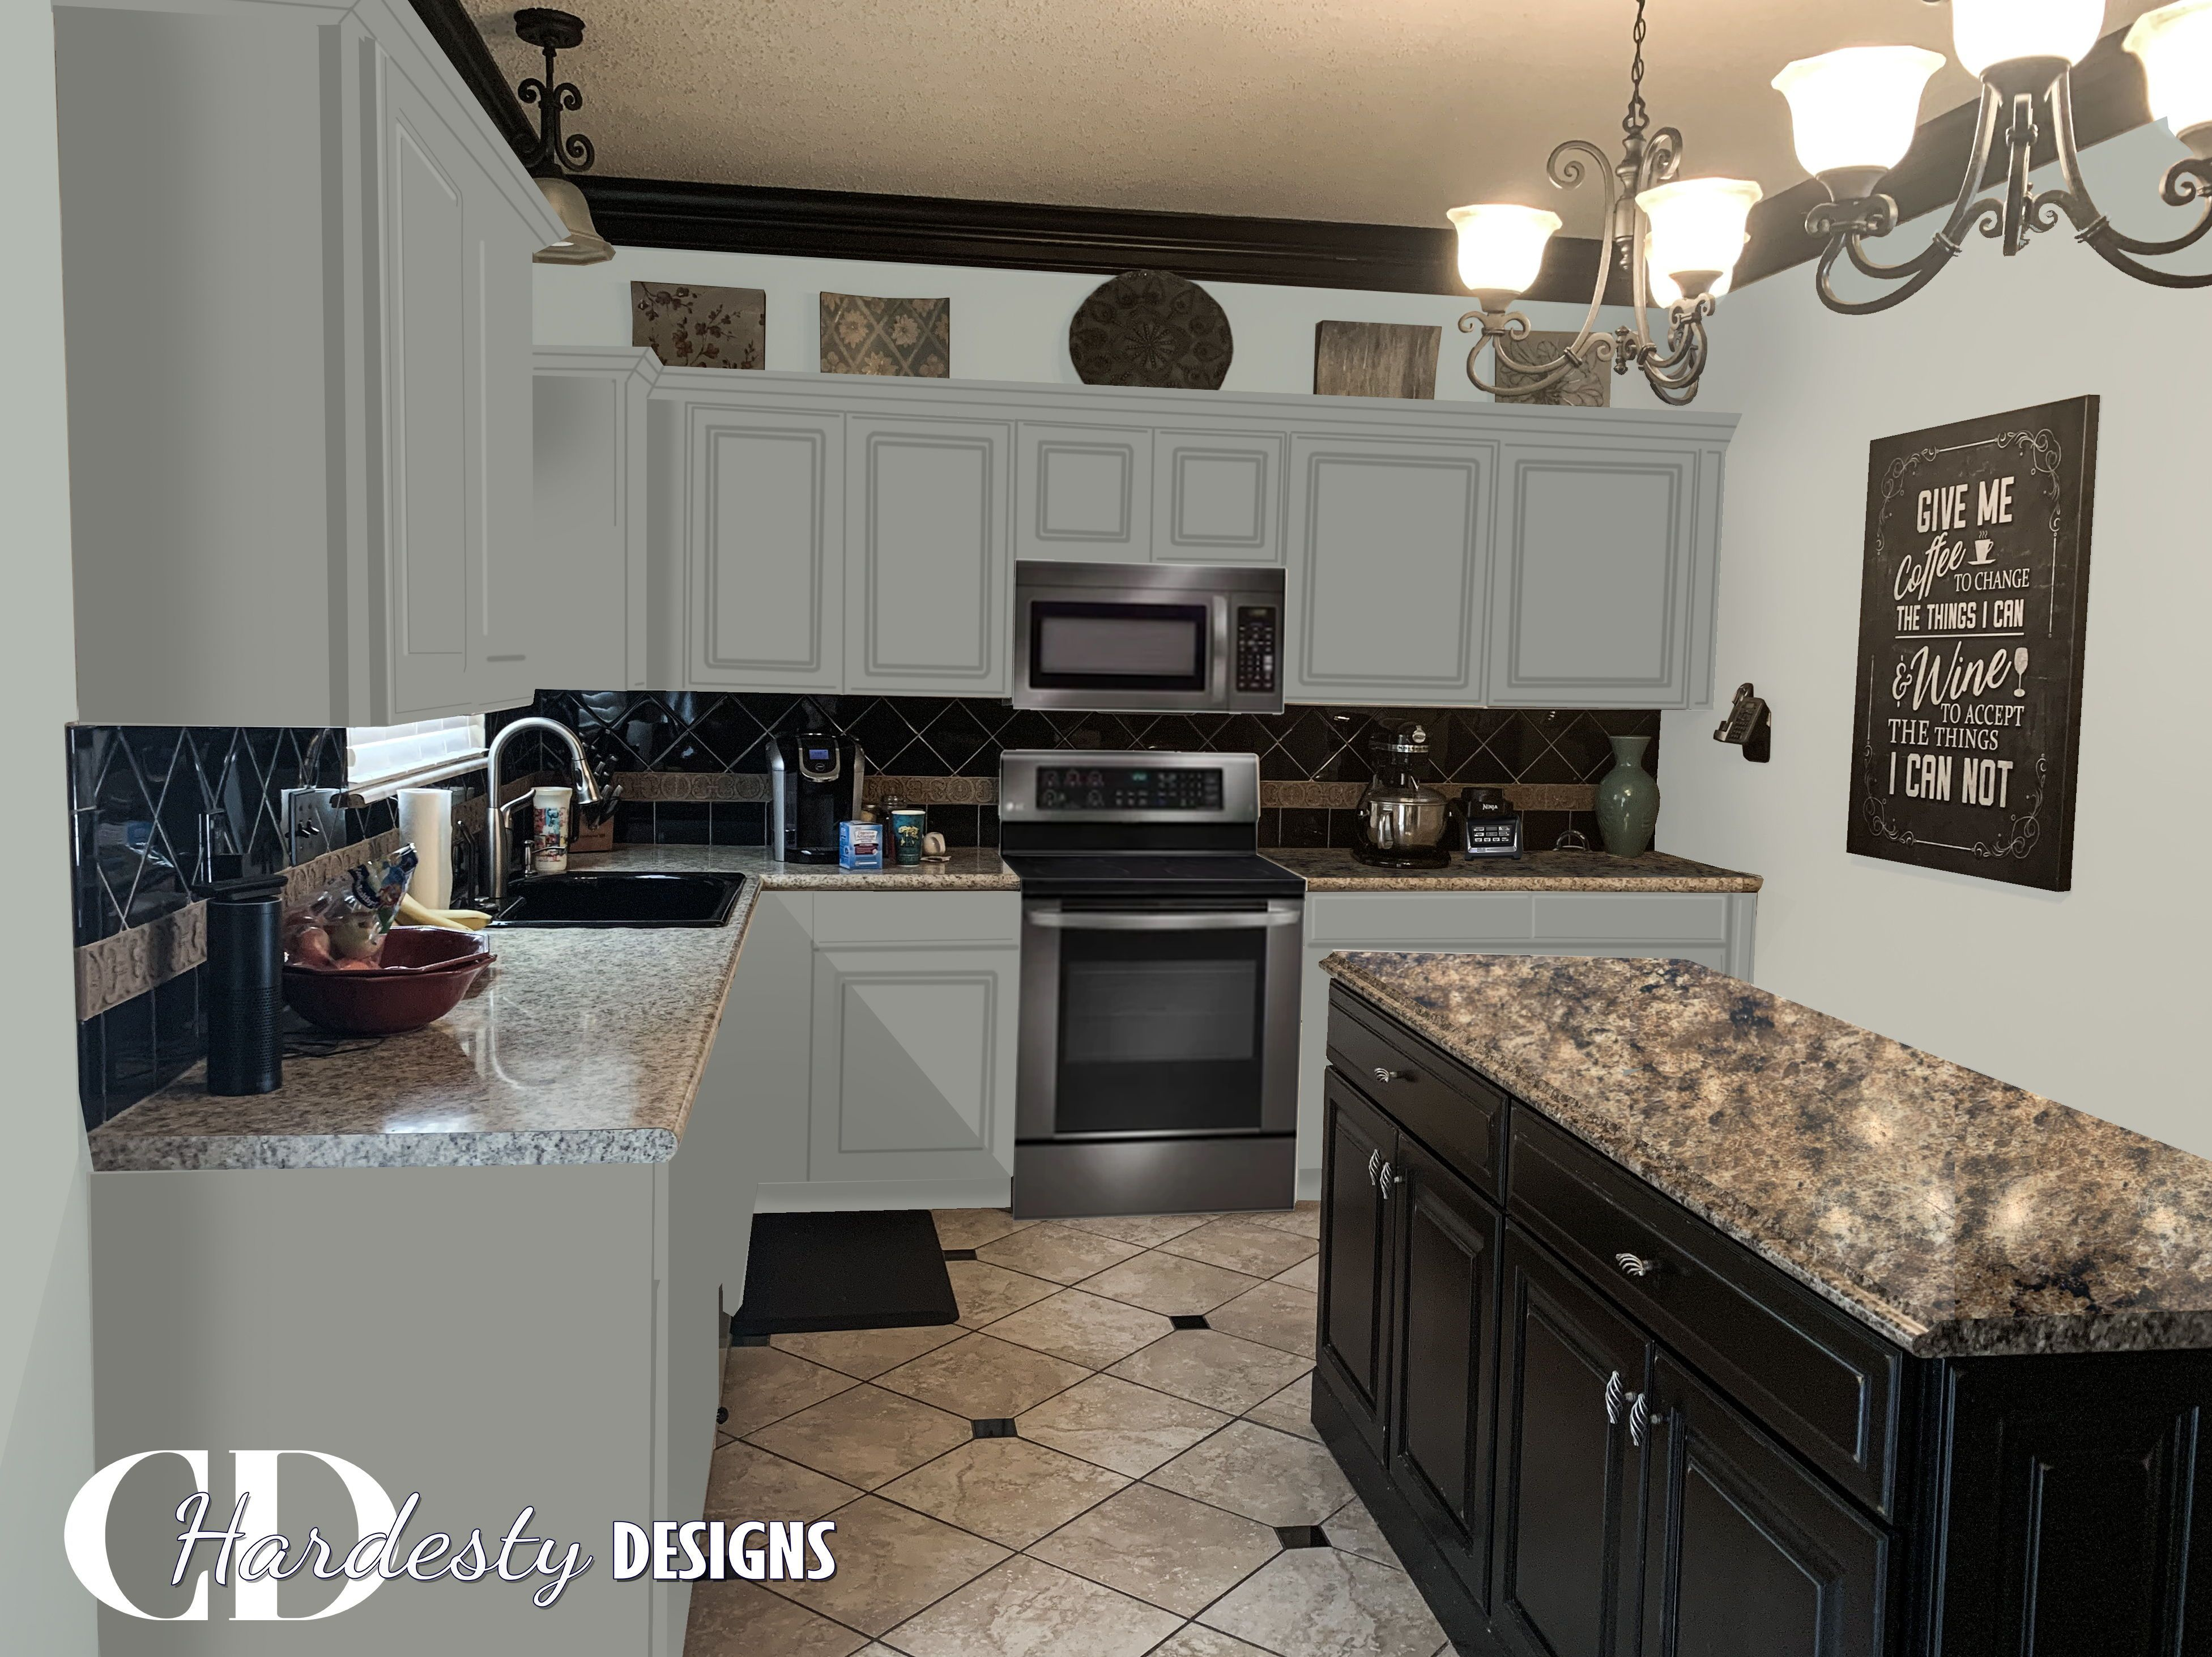 Kitchen Refresh With Sherwin Williams Illusive Green And Silver